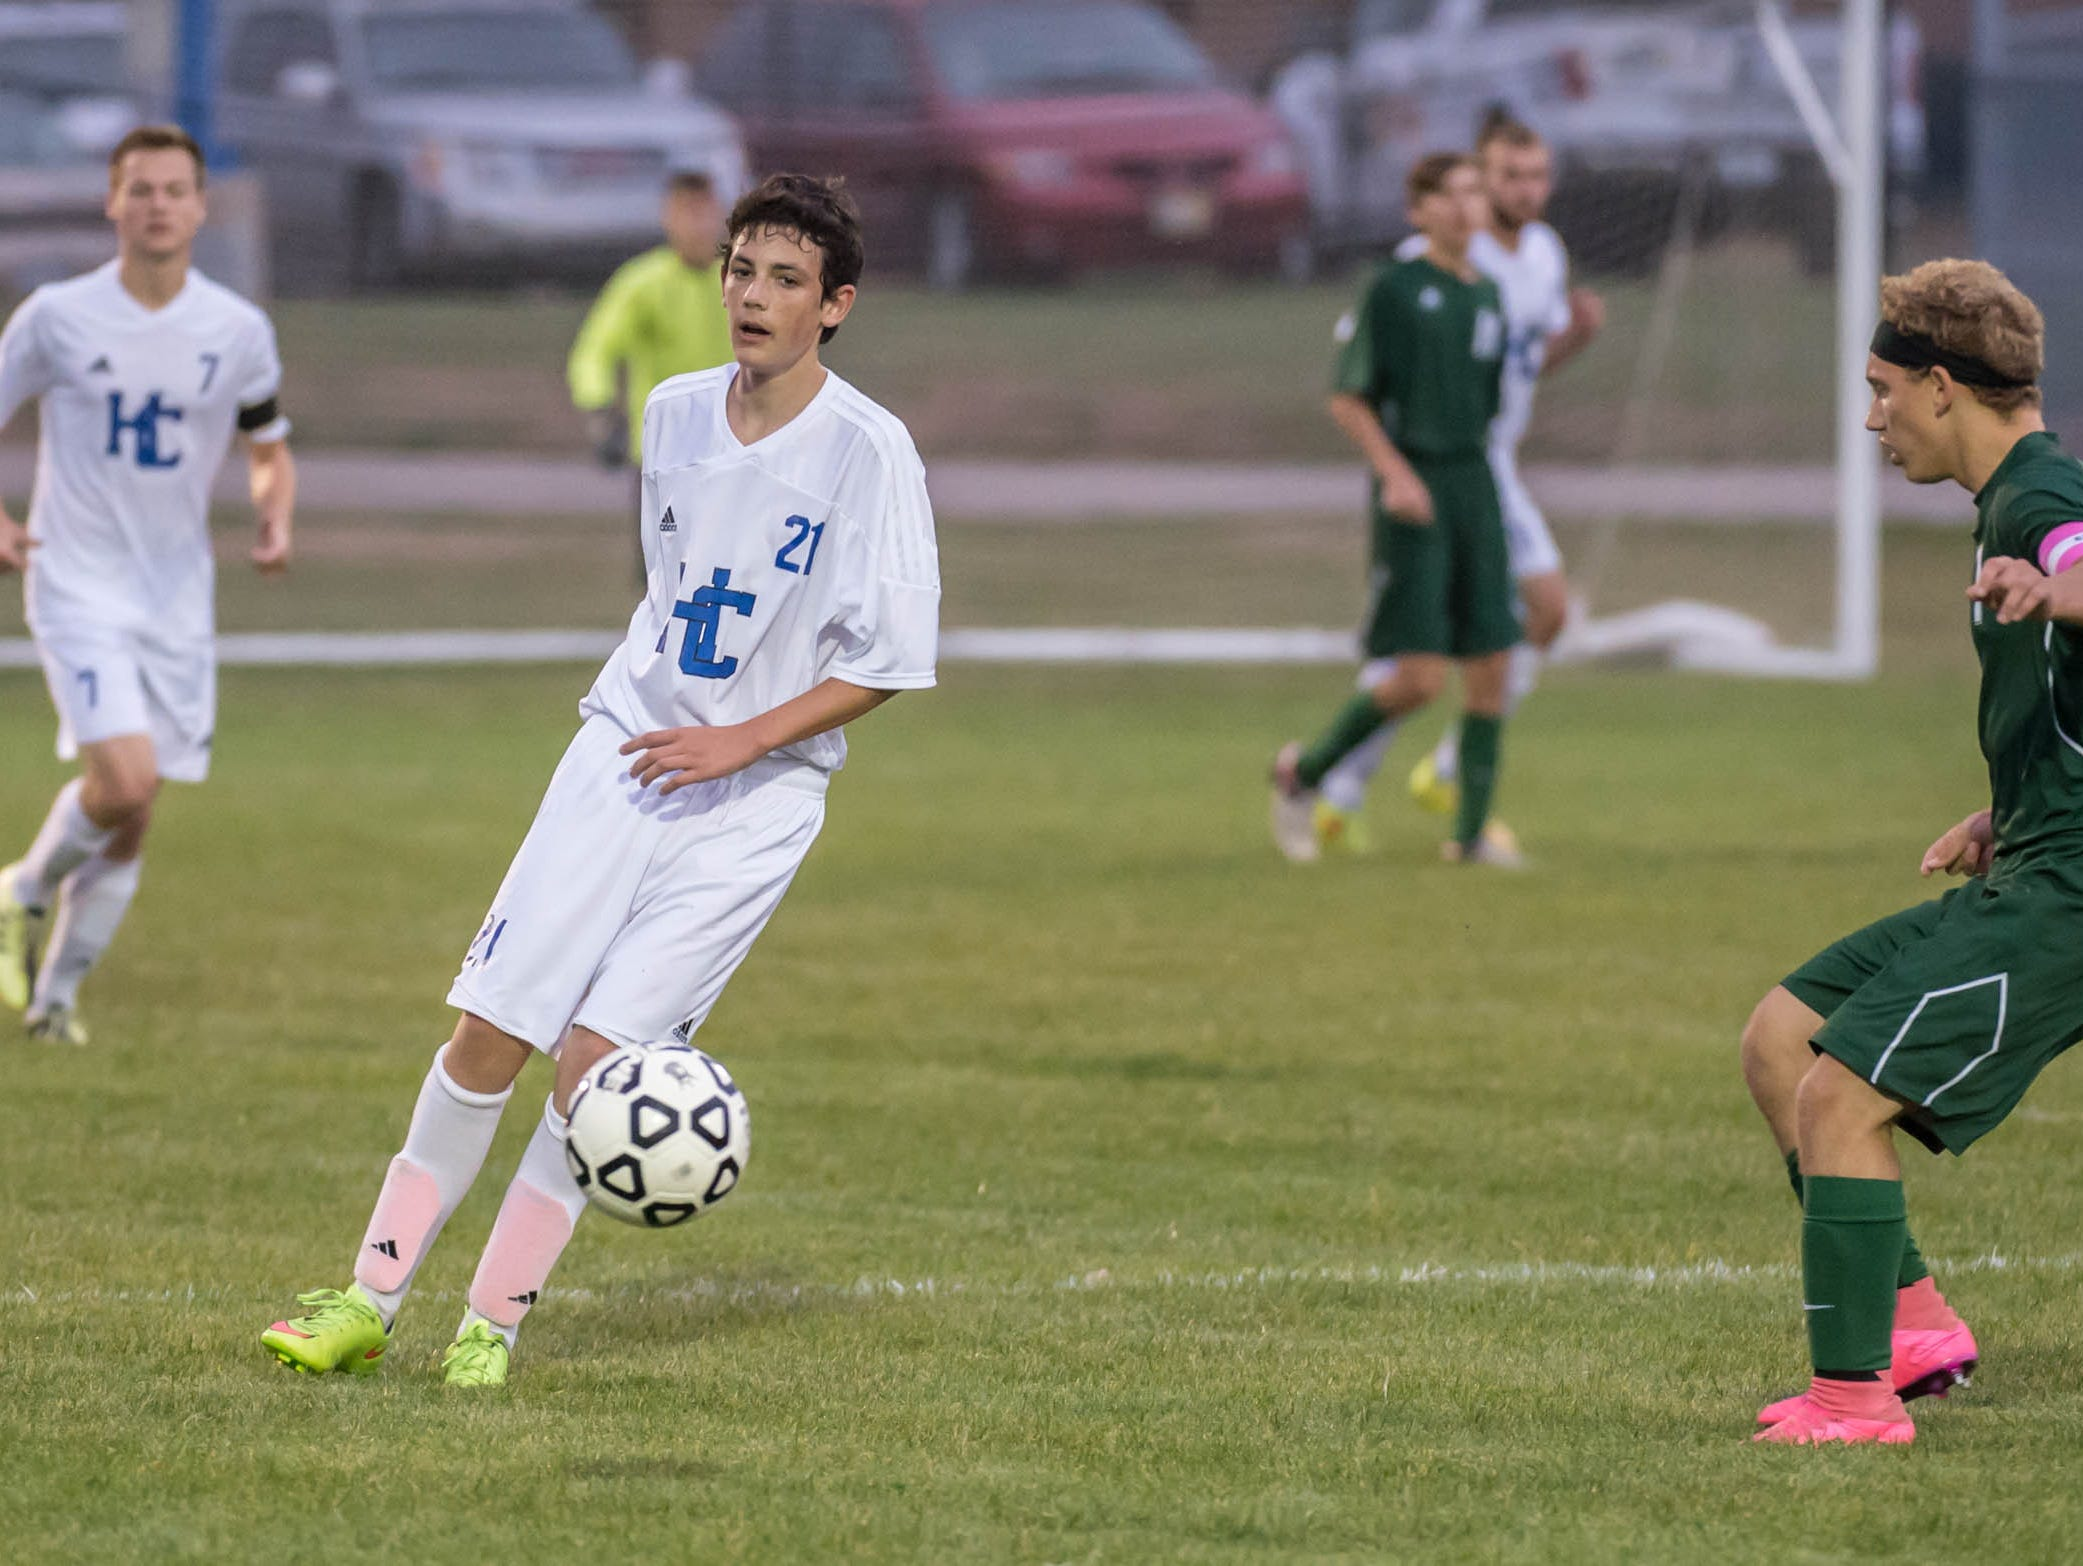 Harper Creek's Diego Subiza (21) advances the ball during district action Tuesday evening.